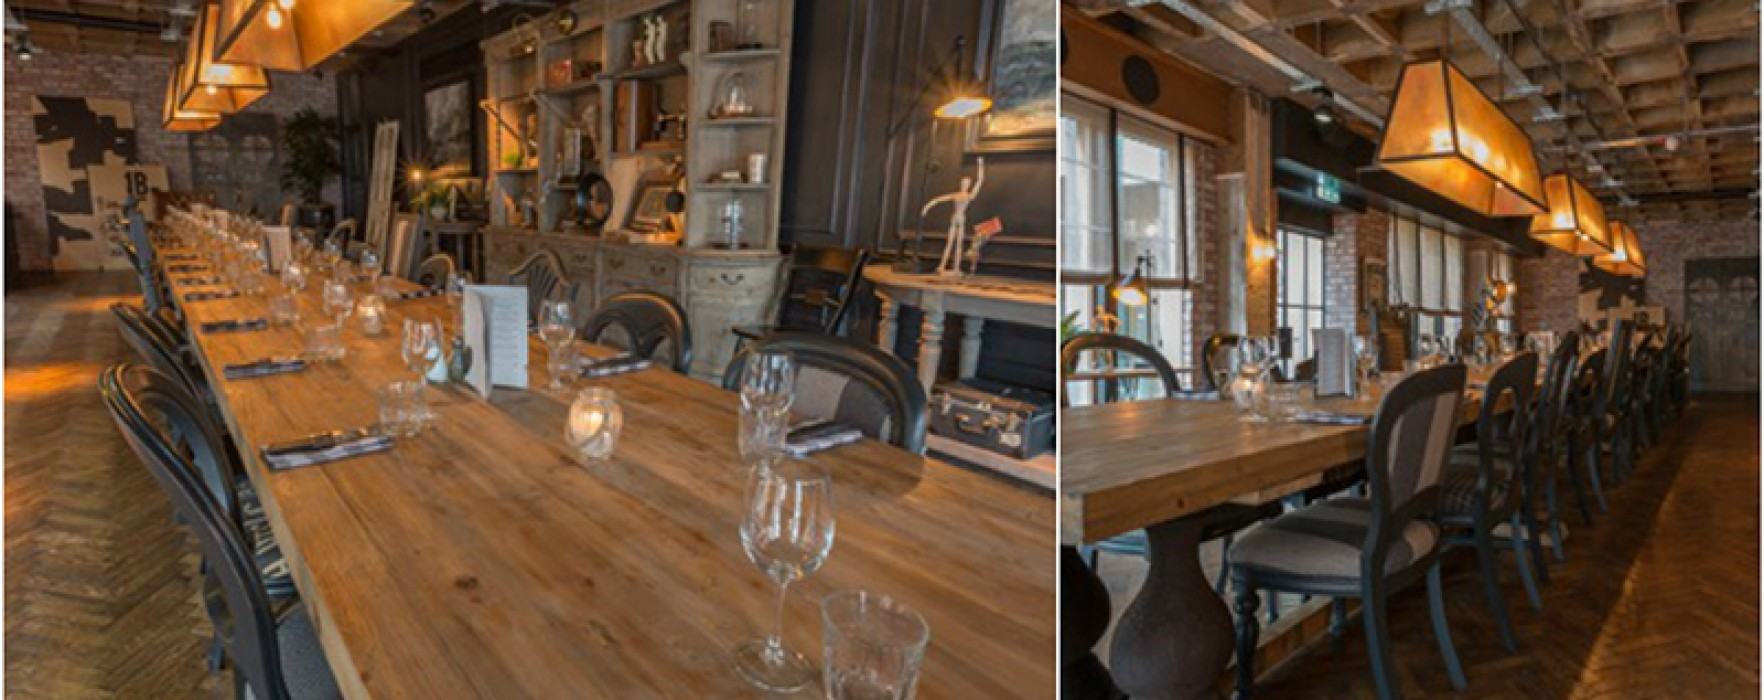 Private Dining At Artisan Manchester | VIVA Lifestyle Magazine